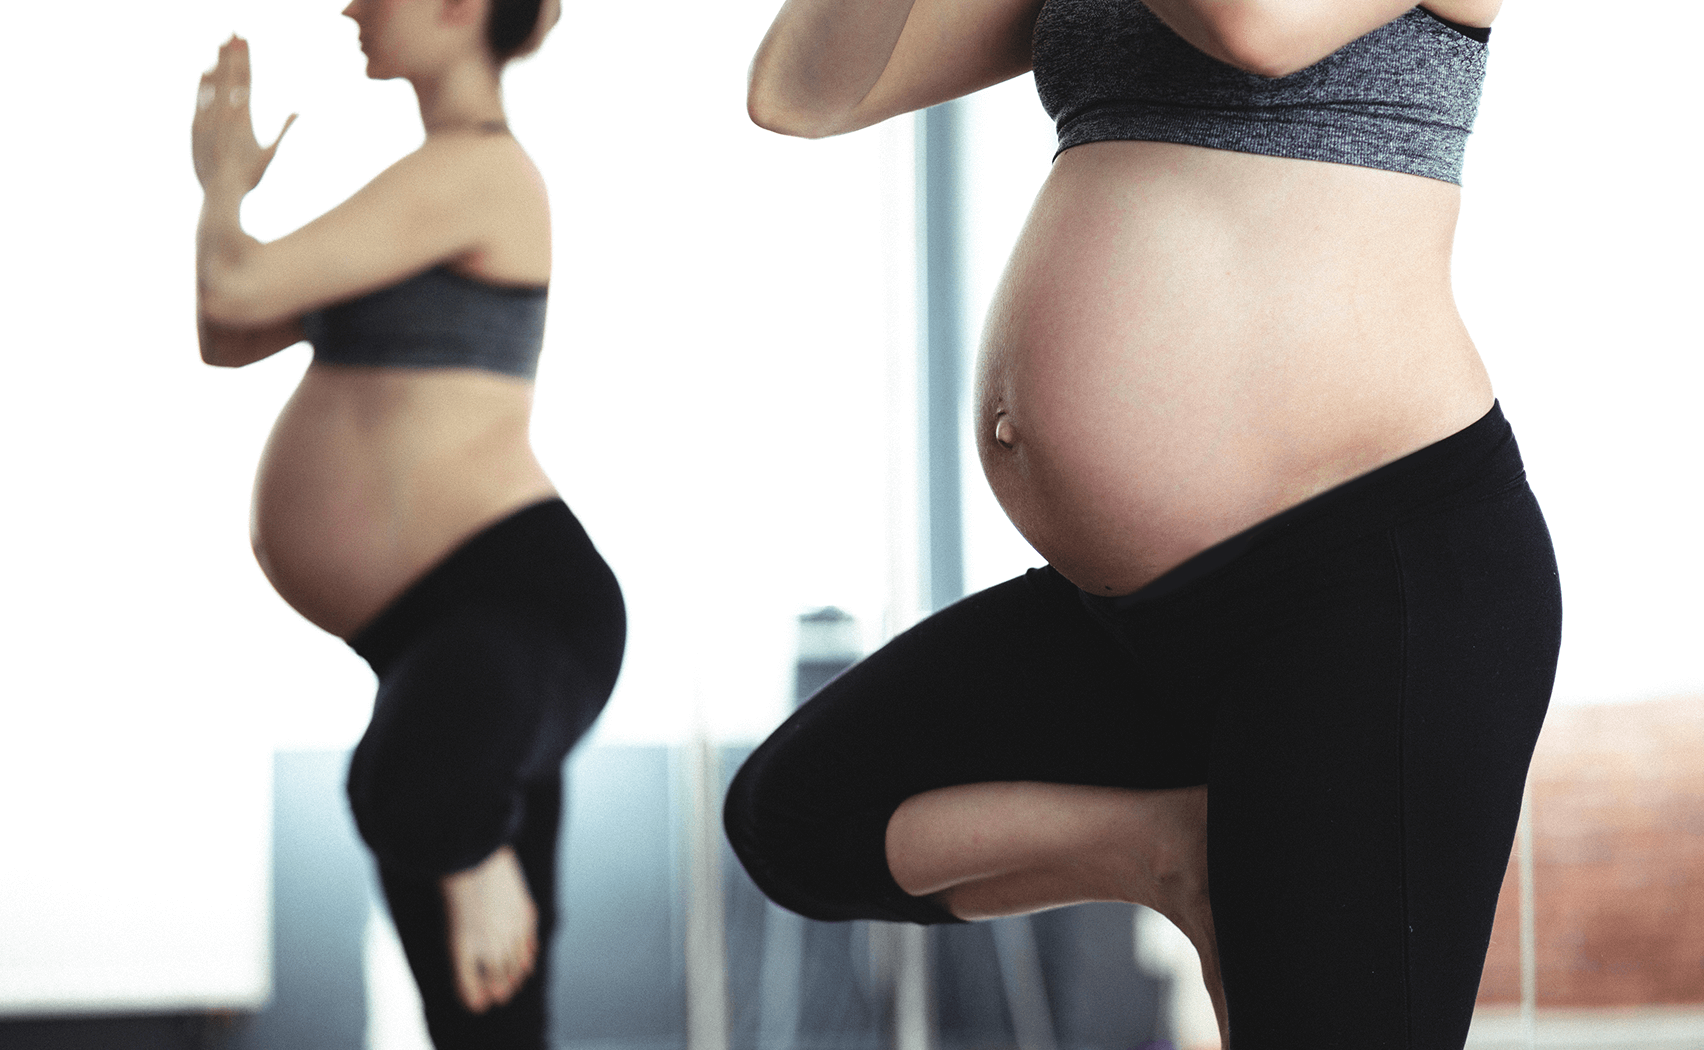 Pregnancy & Skin-Care: Which Products Are Safe?